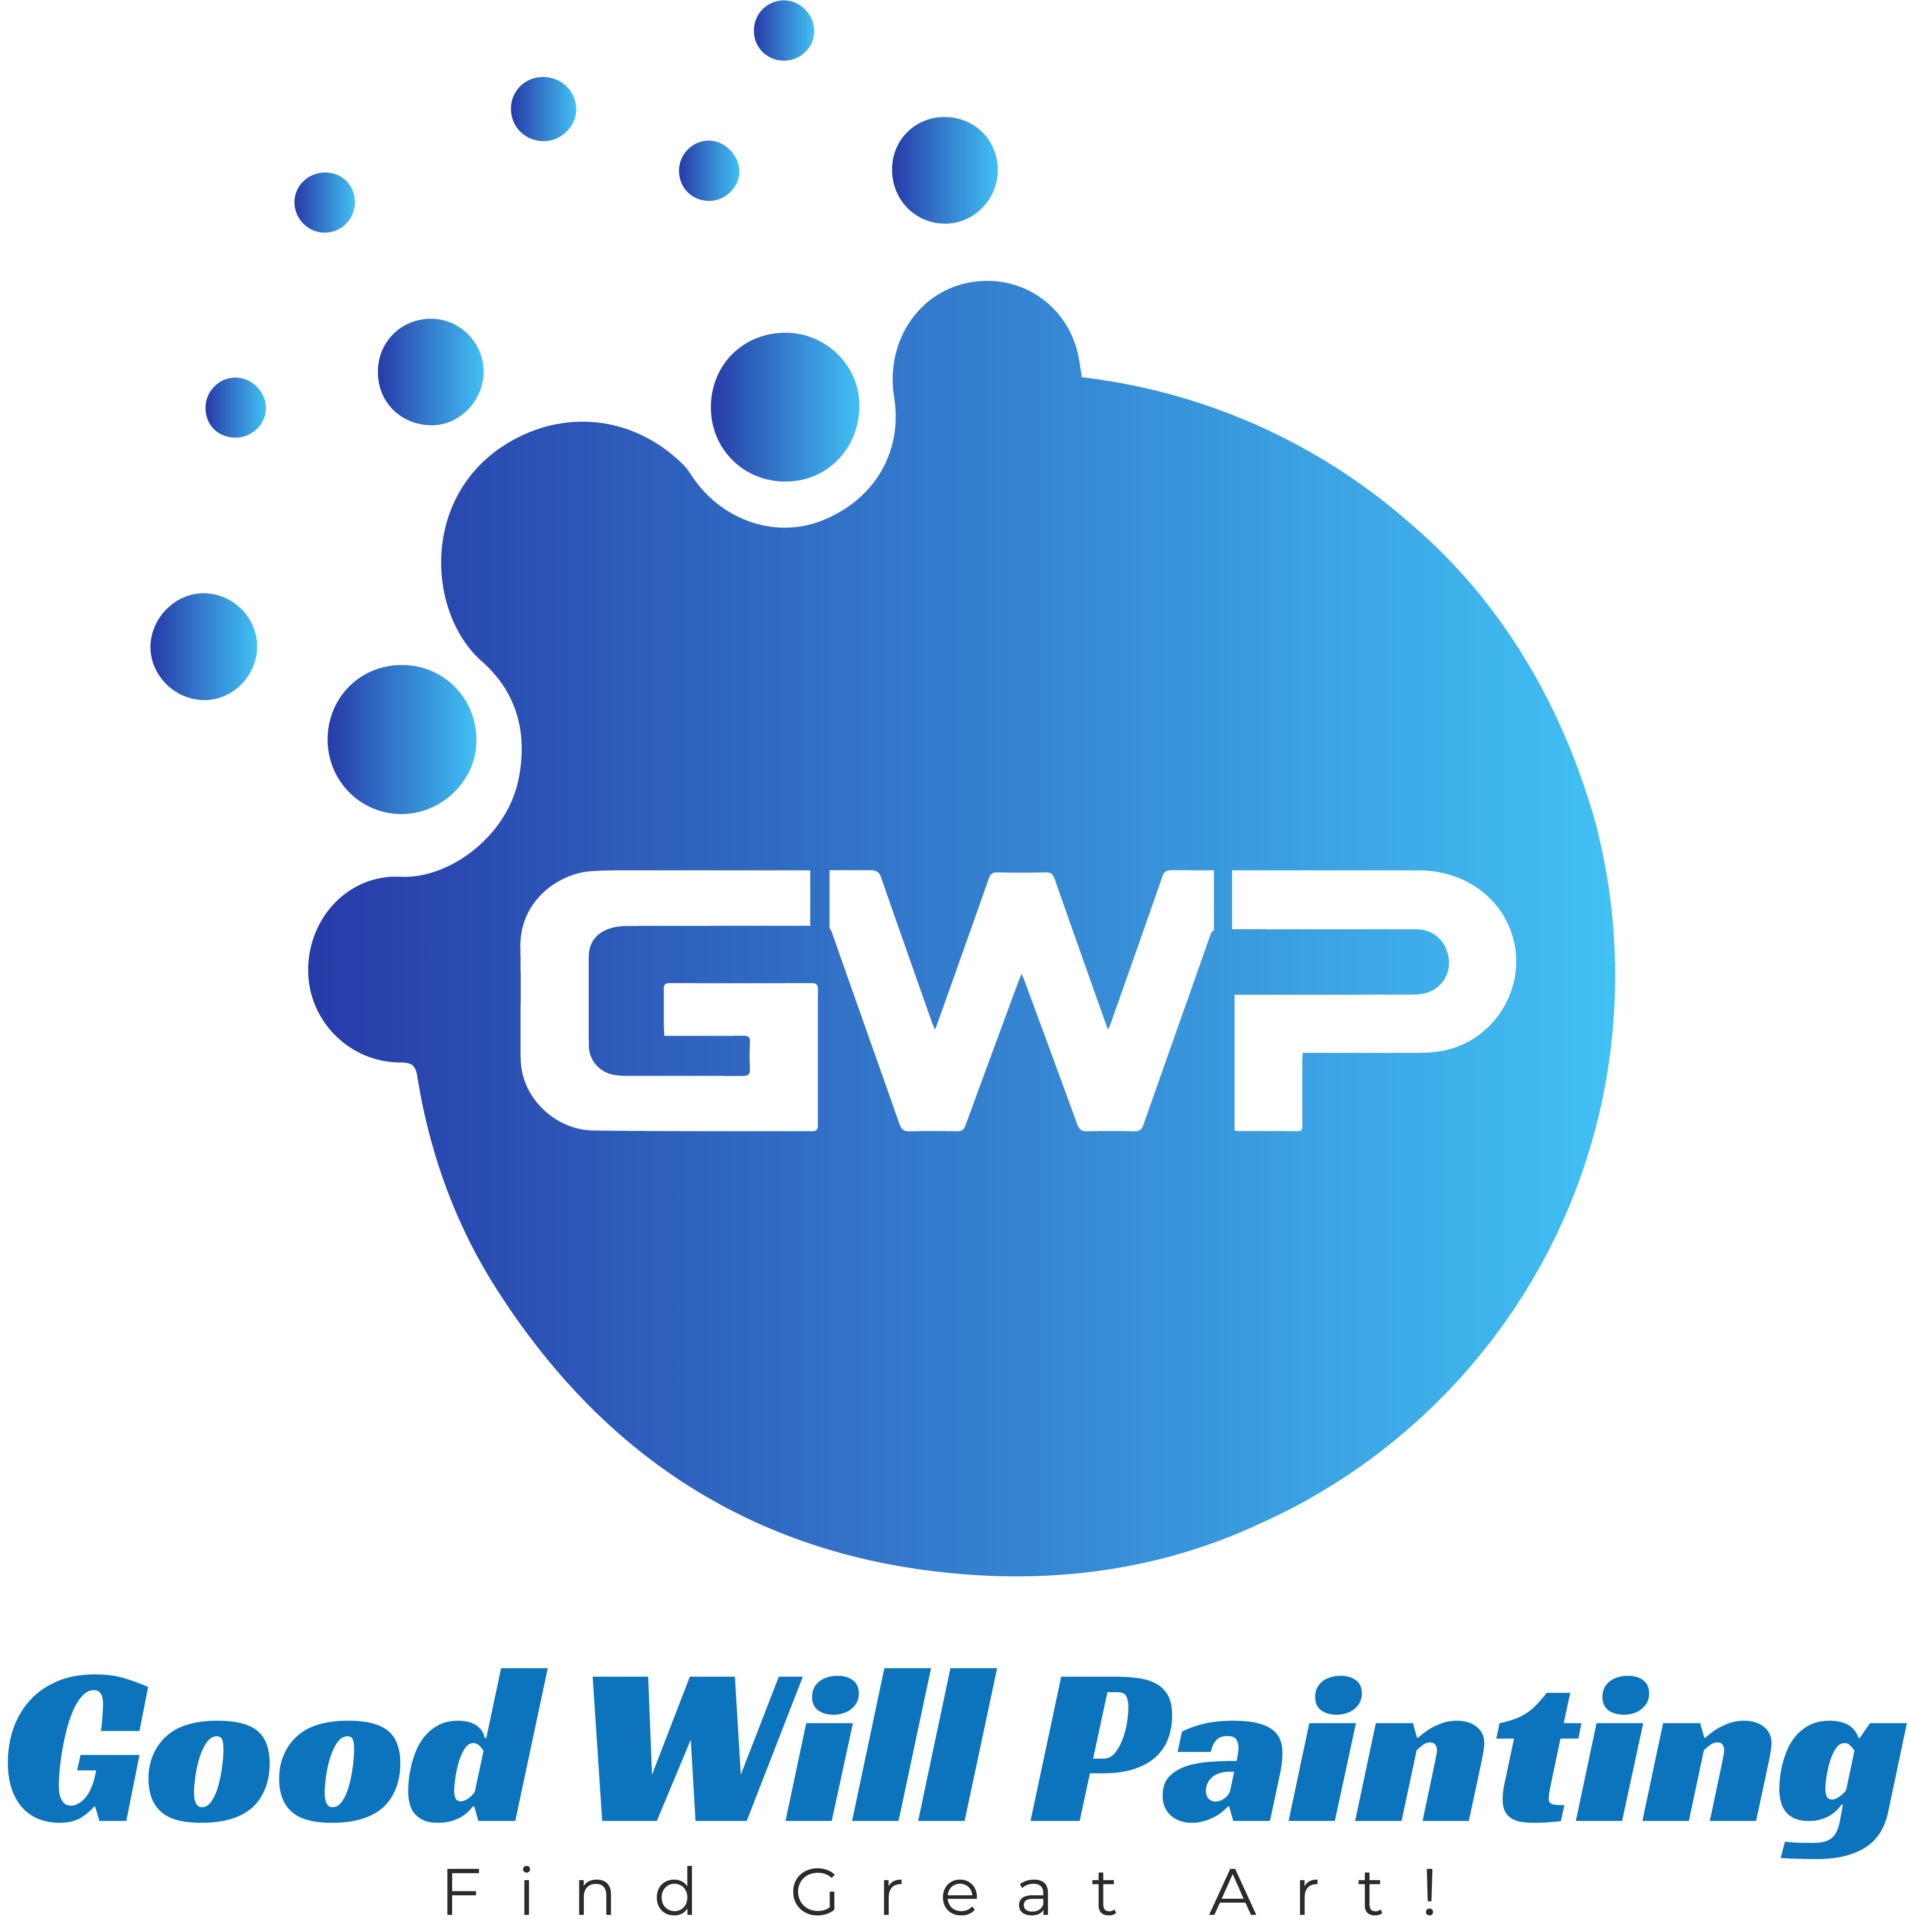 Good Will Painting